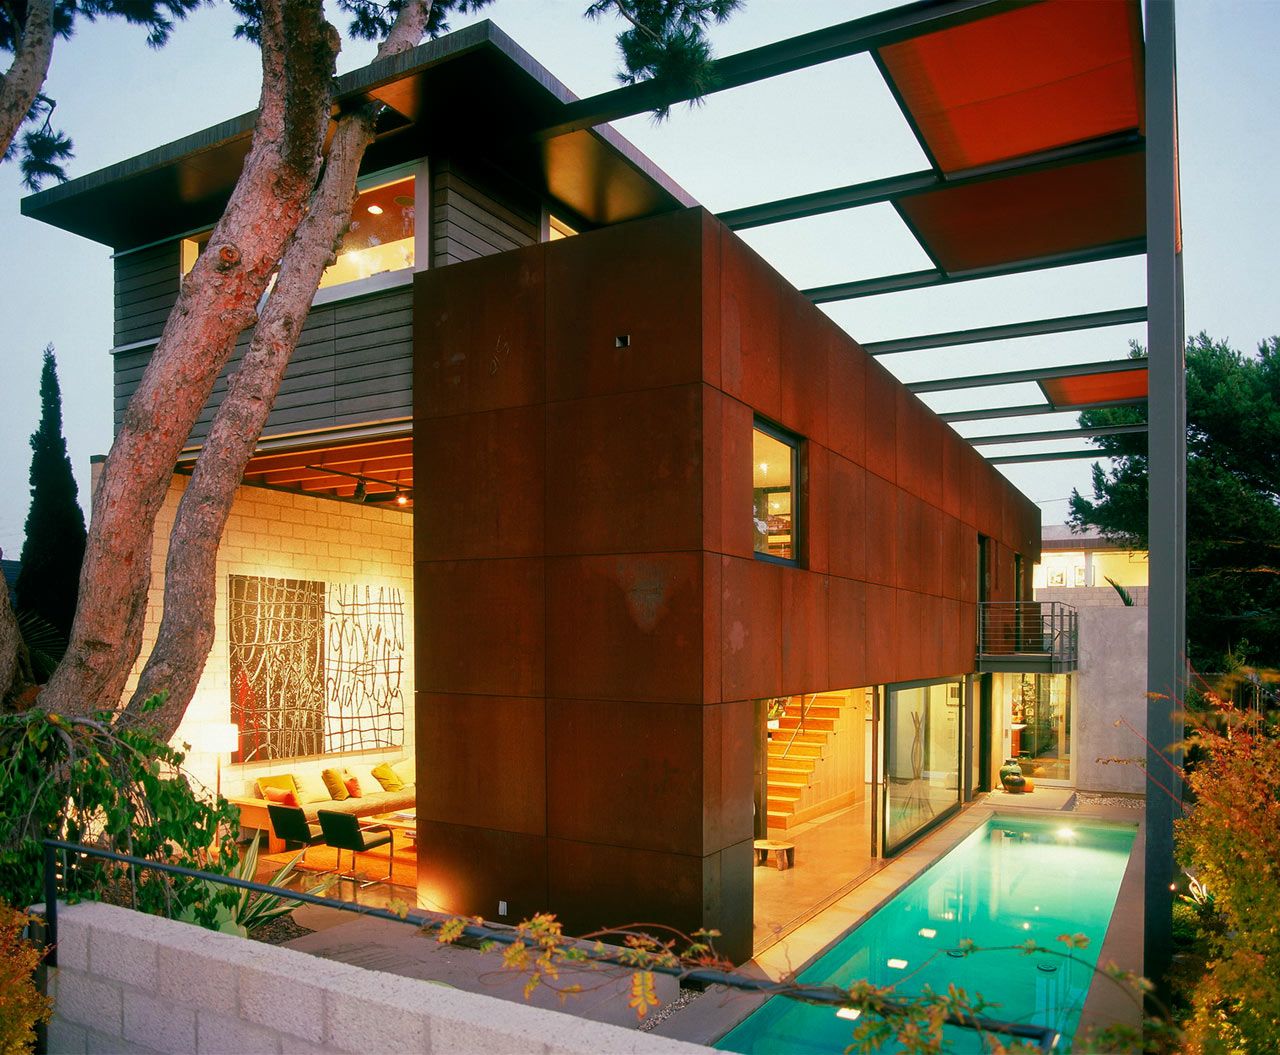 Interview with Architect Steven Ehrlich About 700 Palms